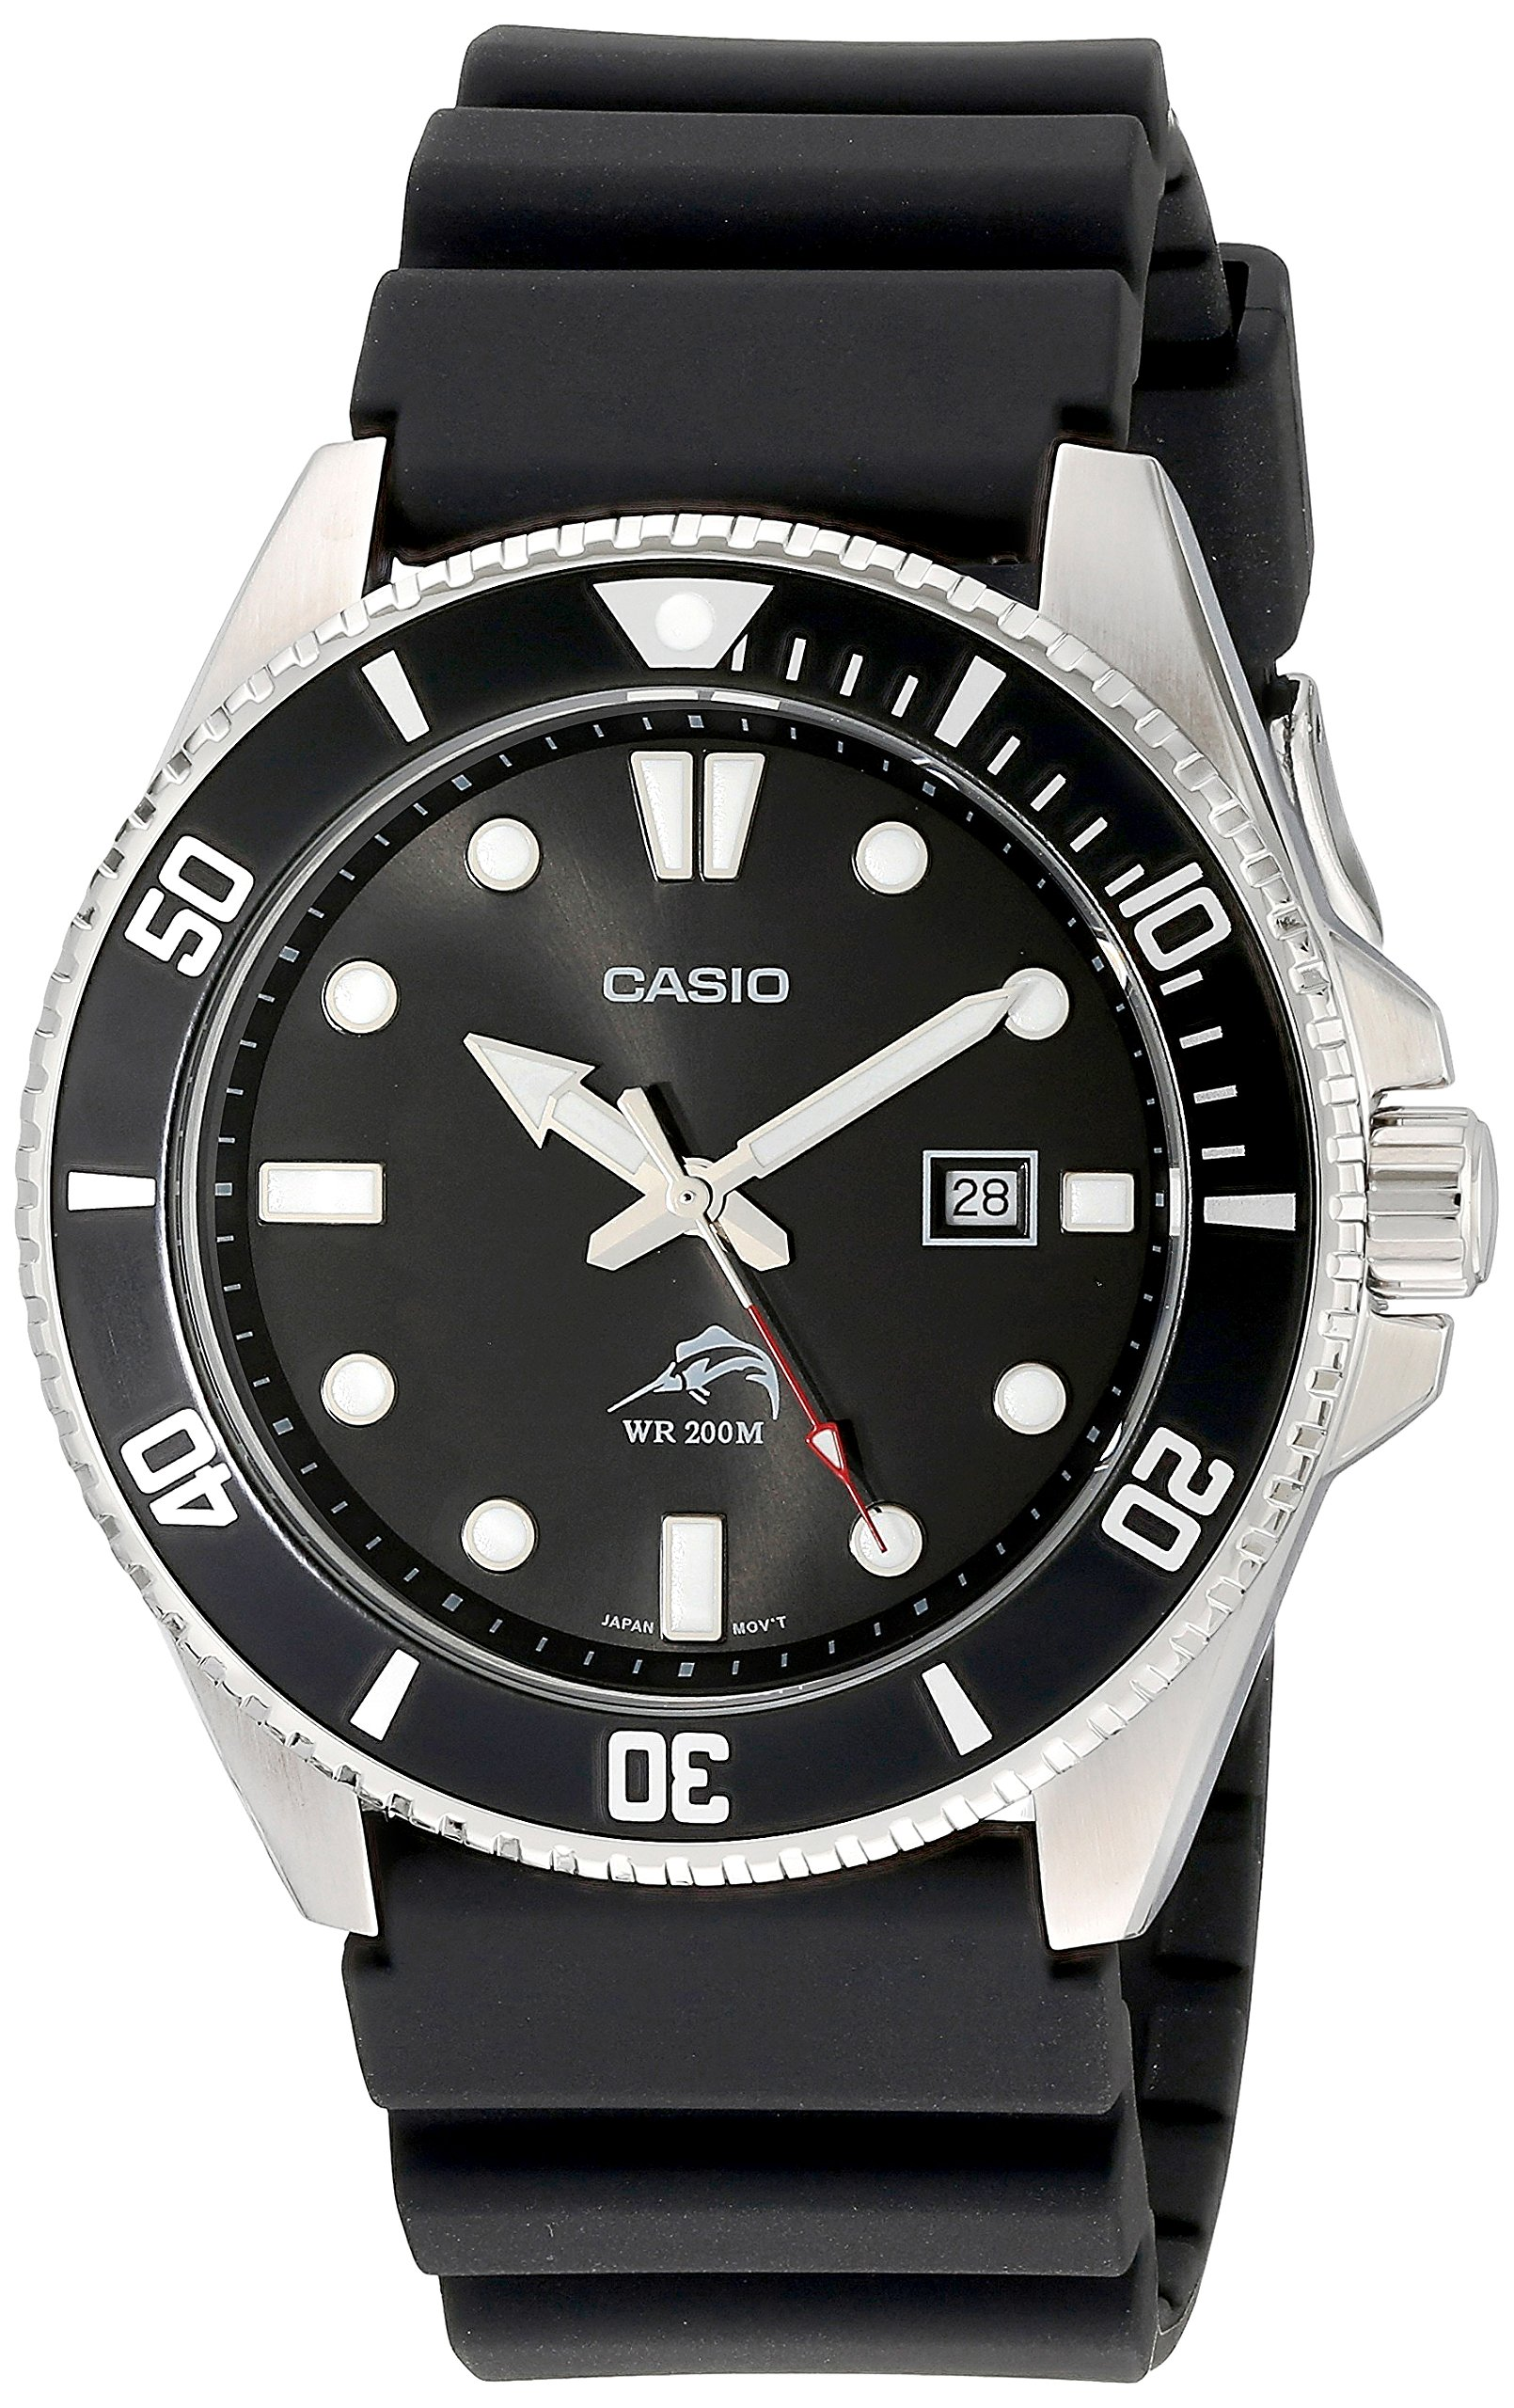 Casio Men's MDV106-1AV 200M Duro Analog Watch, Black by Casio